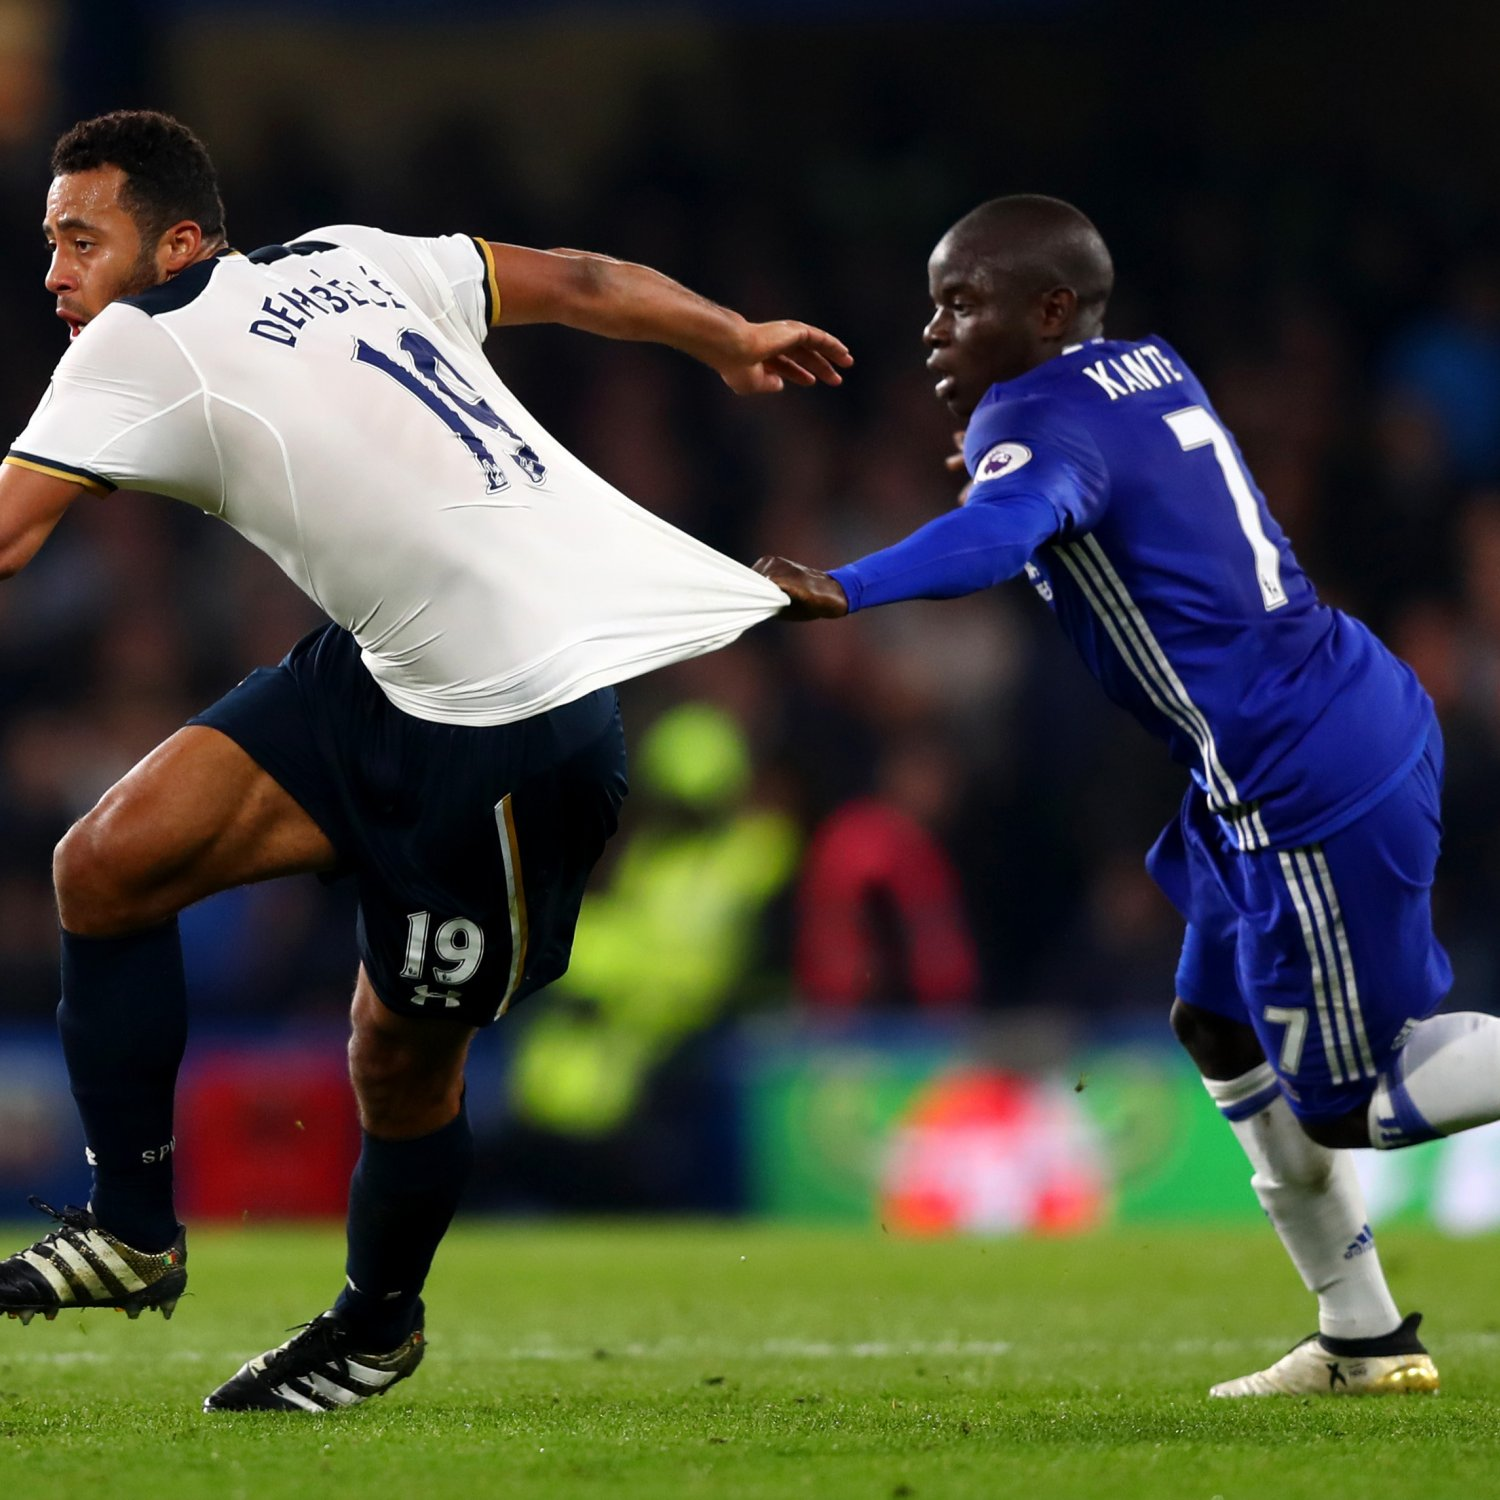 Tottenham Vs Ajax Tickets Away End: Tottenham Vs. Chelsea: Live Score, Highlights From Premier